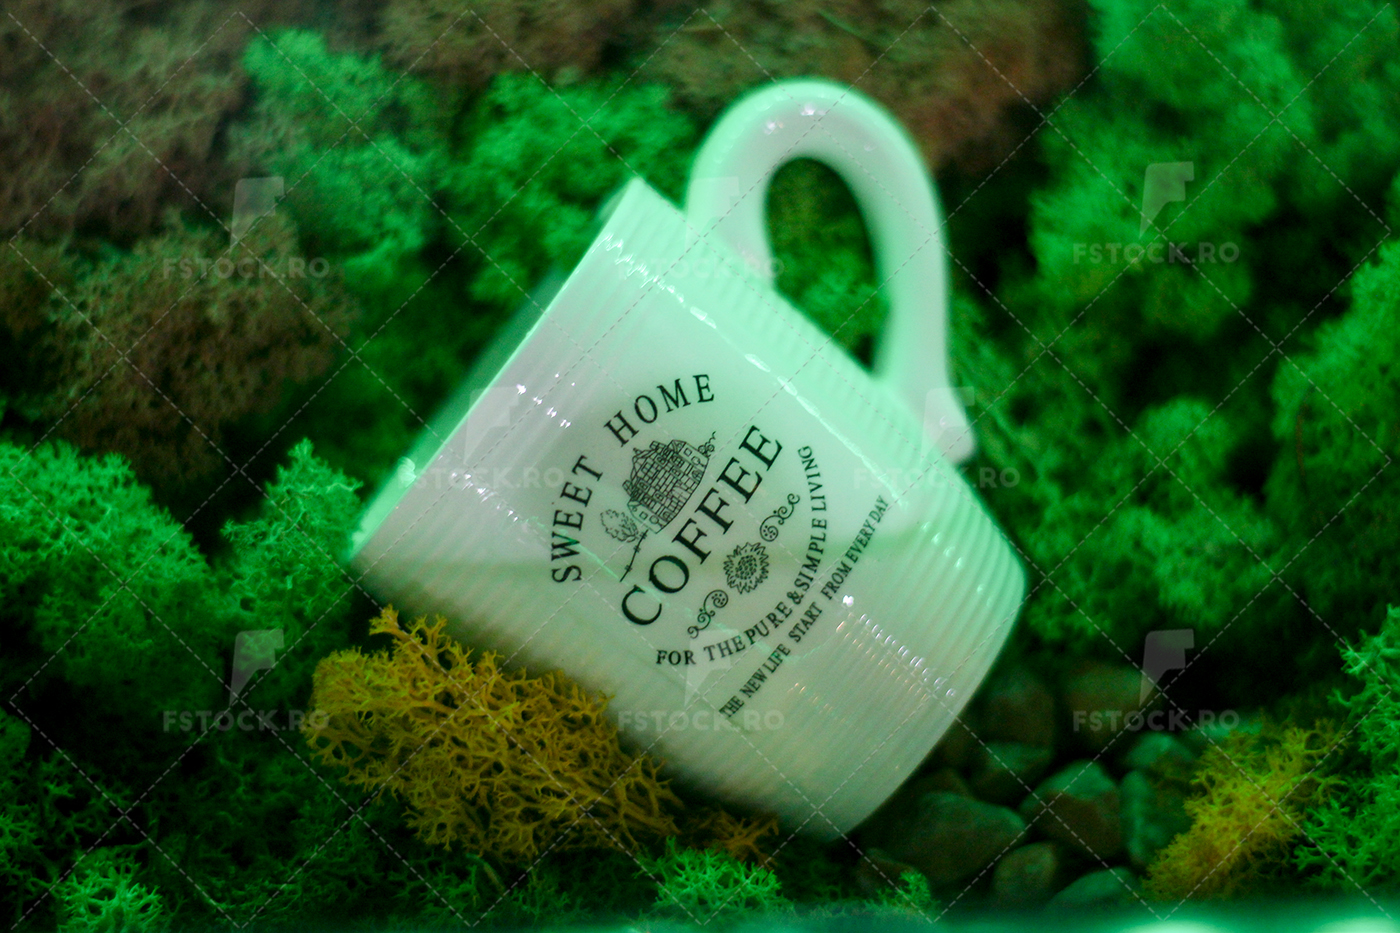 Cup of coffee exposed with conserved grass